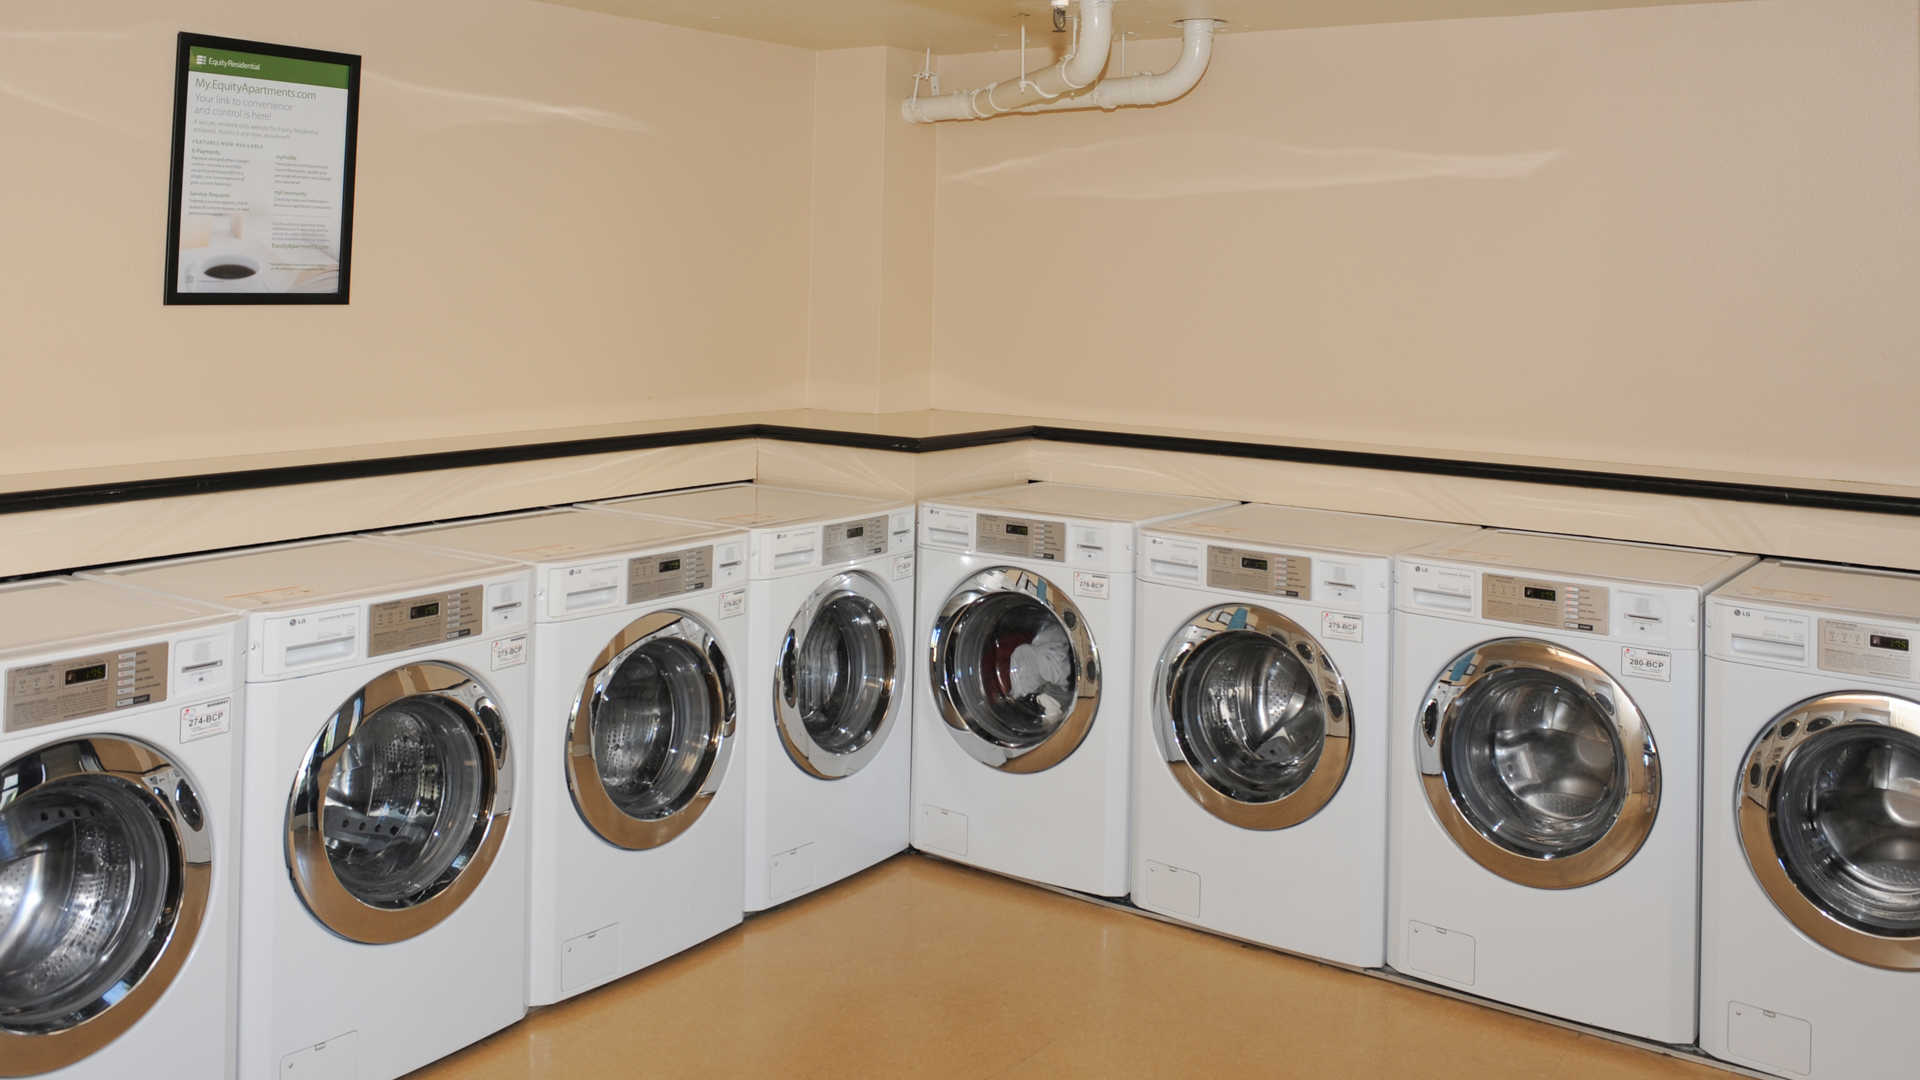 Geary courtyard apartments laundry facility